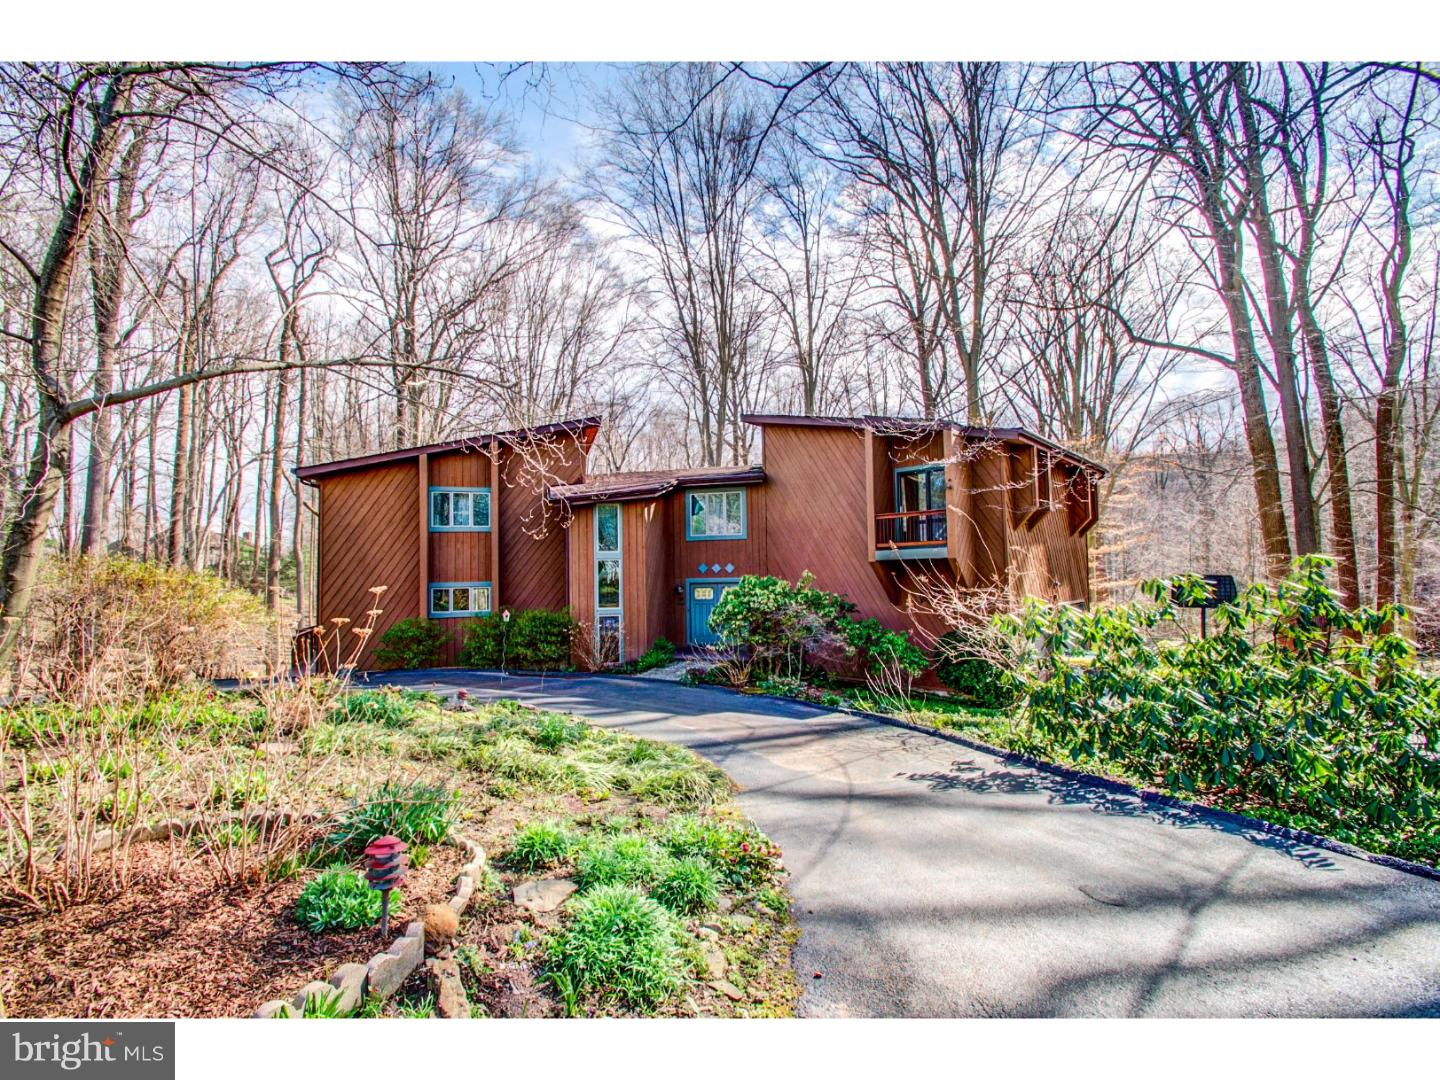 Welcome to this fabulous contemporary home situated in a private woodland retreat, yet only 5 minutes from the center of Hockessin. Enjoy the beautiful woodland views as you enter the circular driveway on this 1.5 acre property.  The main level opens to a sunken living room with light from the sliding doors streaming into the angles of the rooms and bamboo wood floors. A cozy wood-burning stove provides an additional heat source.  Step up to the dining area with wet bar and into the eat-in kitchen with custom wood cabinets, granite counters, eat-in island and double ovens.  Custom cabinetry in the breakfast area provides plentiful storage for glassware and linens. From there you have easy access to the main floor laundry room/pantry, as well as the powder room.  All rooms on the main level are surrounded by glass sliding doors to the 75' deck where you can entertain all your friends! The lower level of the home is finished with a large family room, powder room and a wet bar, with recently updated granite and new sink.  There is ample unfinished dry space for additional crafting or workshop. Pella sliding doors take you the brick patio with fire pit, where you can roast marshmallows or relax and watch the birds.  The oversized two-car garage has significant storage with built in cupboards and an extra high ceiling for bike storage or multi-layer cars. The upper level holds 4 generous bedrooms, each with a private balcony for reading, sunning or simply watching the wildlife. The freshly painted master is large & bright with a side room that can be used as a sitting room, office or closet/dressing room.  A walk-in closet and large master bath with Jacuzzi tub complete the room. The hall bath has a recently renovated walk-in shower and upgraded Carrara marble vanity top.  Take note of the multi-floor copper art piece, custom built by the original owner, in the center of the stairwell.  Brand new Lennox High Efficiency Furnace propane furnace installed 12/20!  Other enha